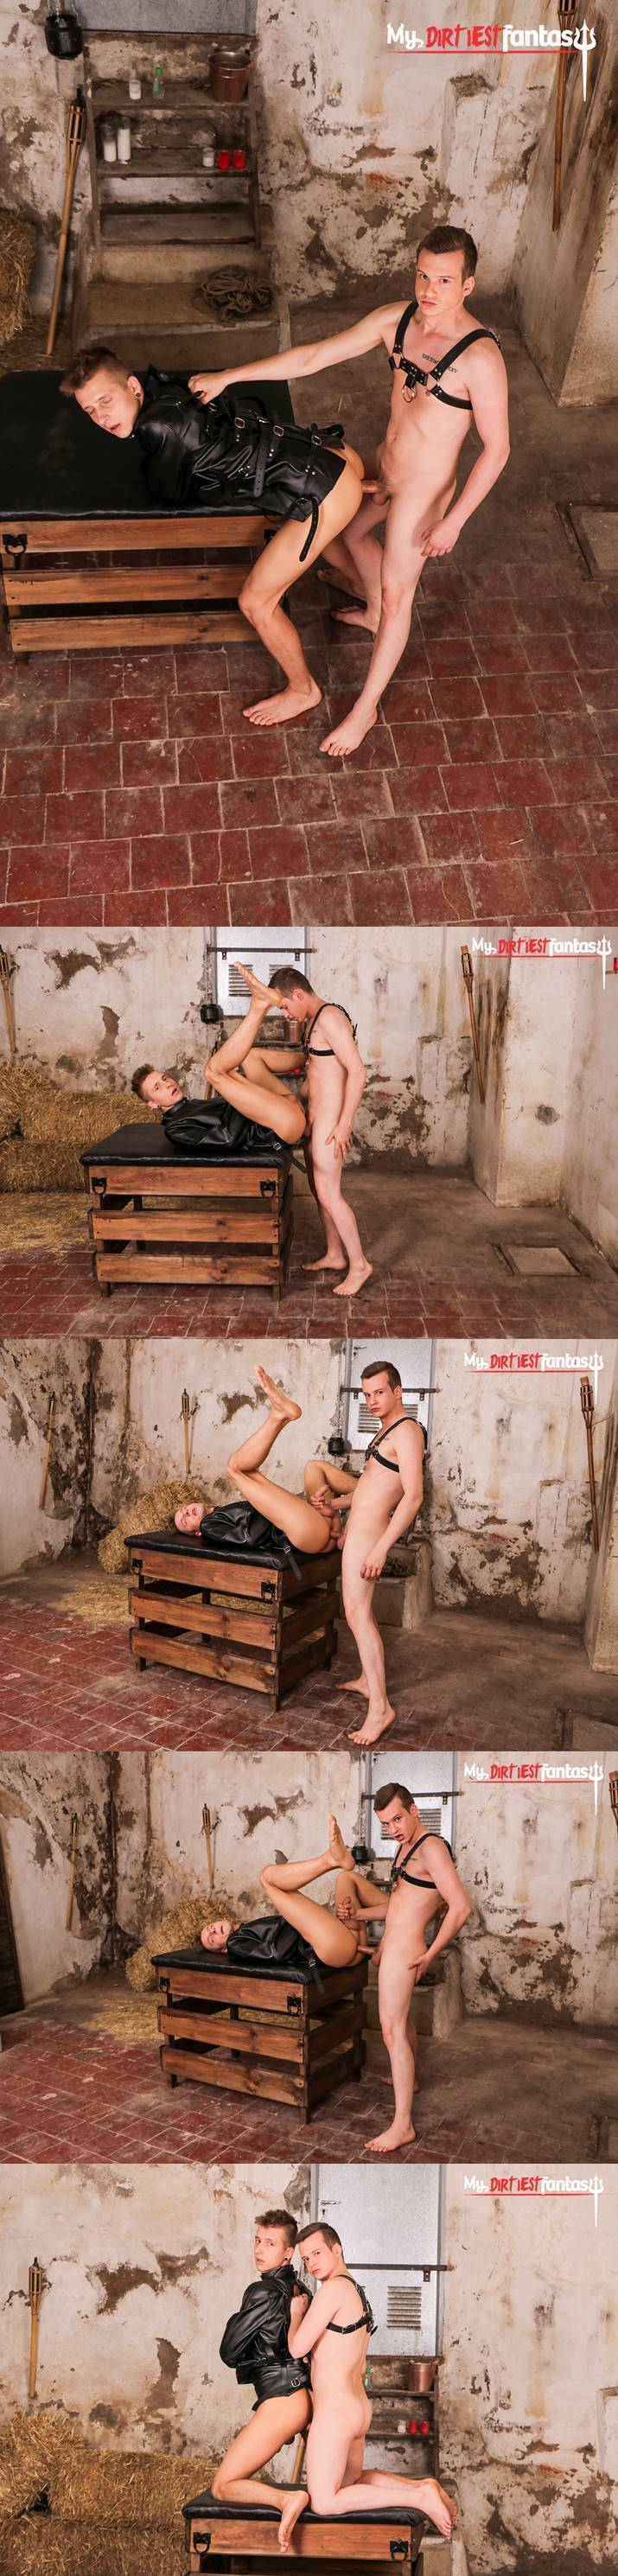 Peter Polloc & Silas Rise for My Dirtiest Fantasy 1